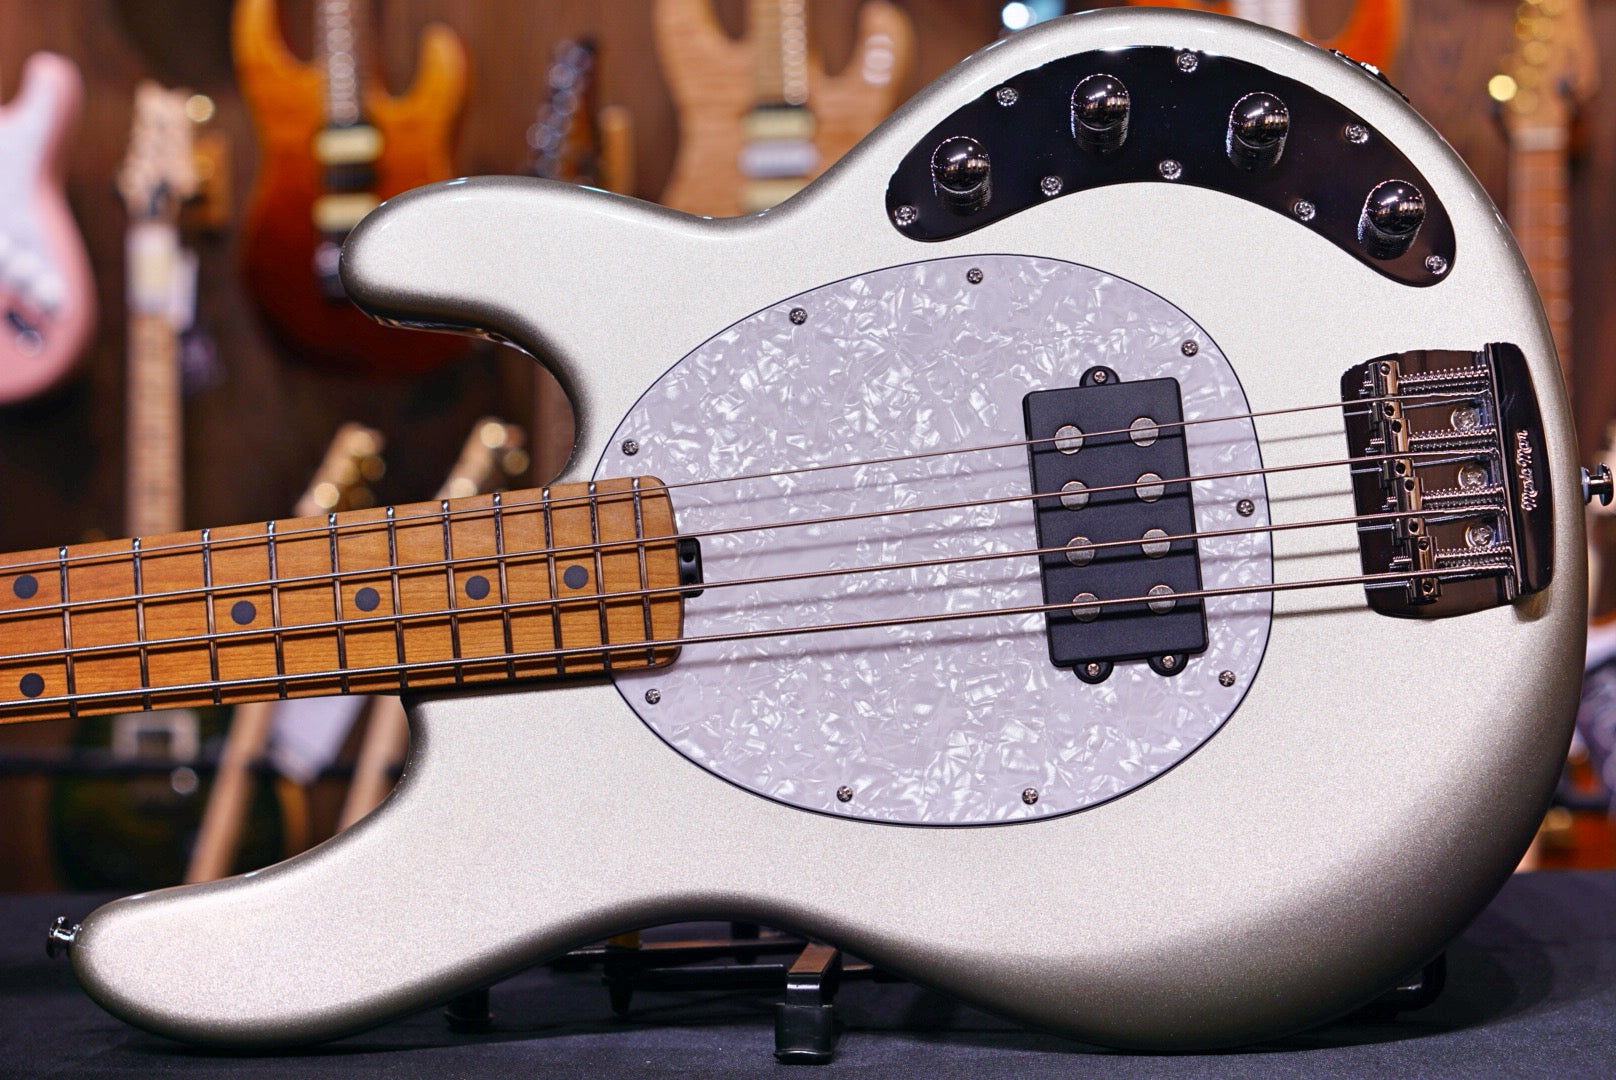 Ernie Ball Music Man StingRay Special 4 H Bass Guitar - Ghostwood F90152